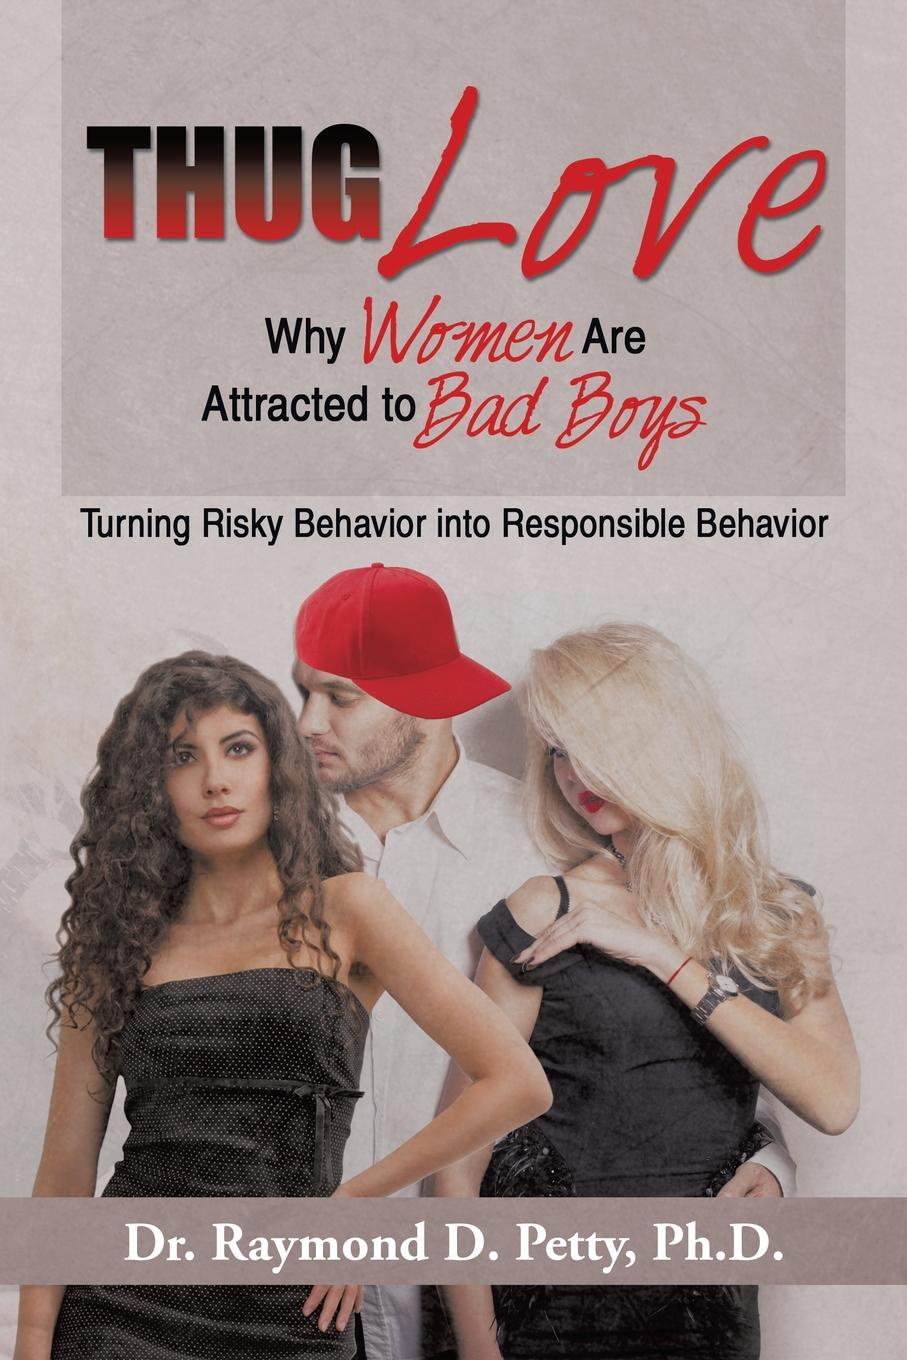 Raymond D. Petty Thug Love. Why Women Are Attracted to Bad Boys